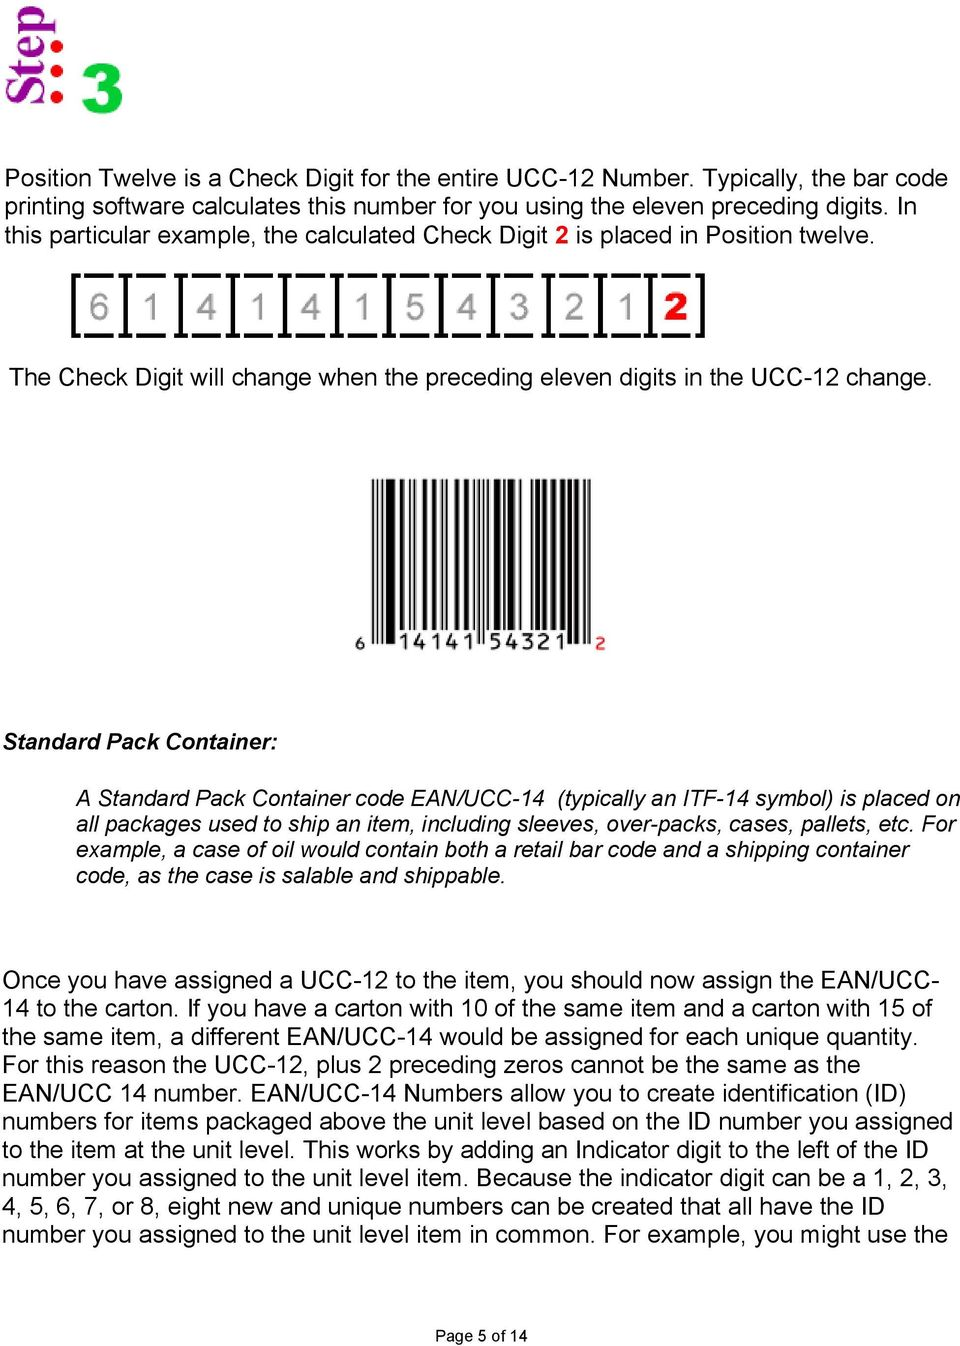 Standard Pack Container: A Standard Pack Container code EAN/UCC-14 (typically an ITF-14 symbol) is placed on all packages used to ship an item, including sleeves, over-packs, cases, pallets, etc.